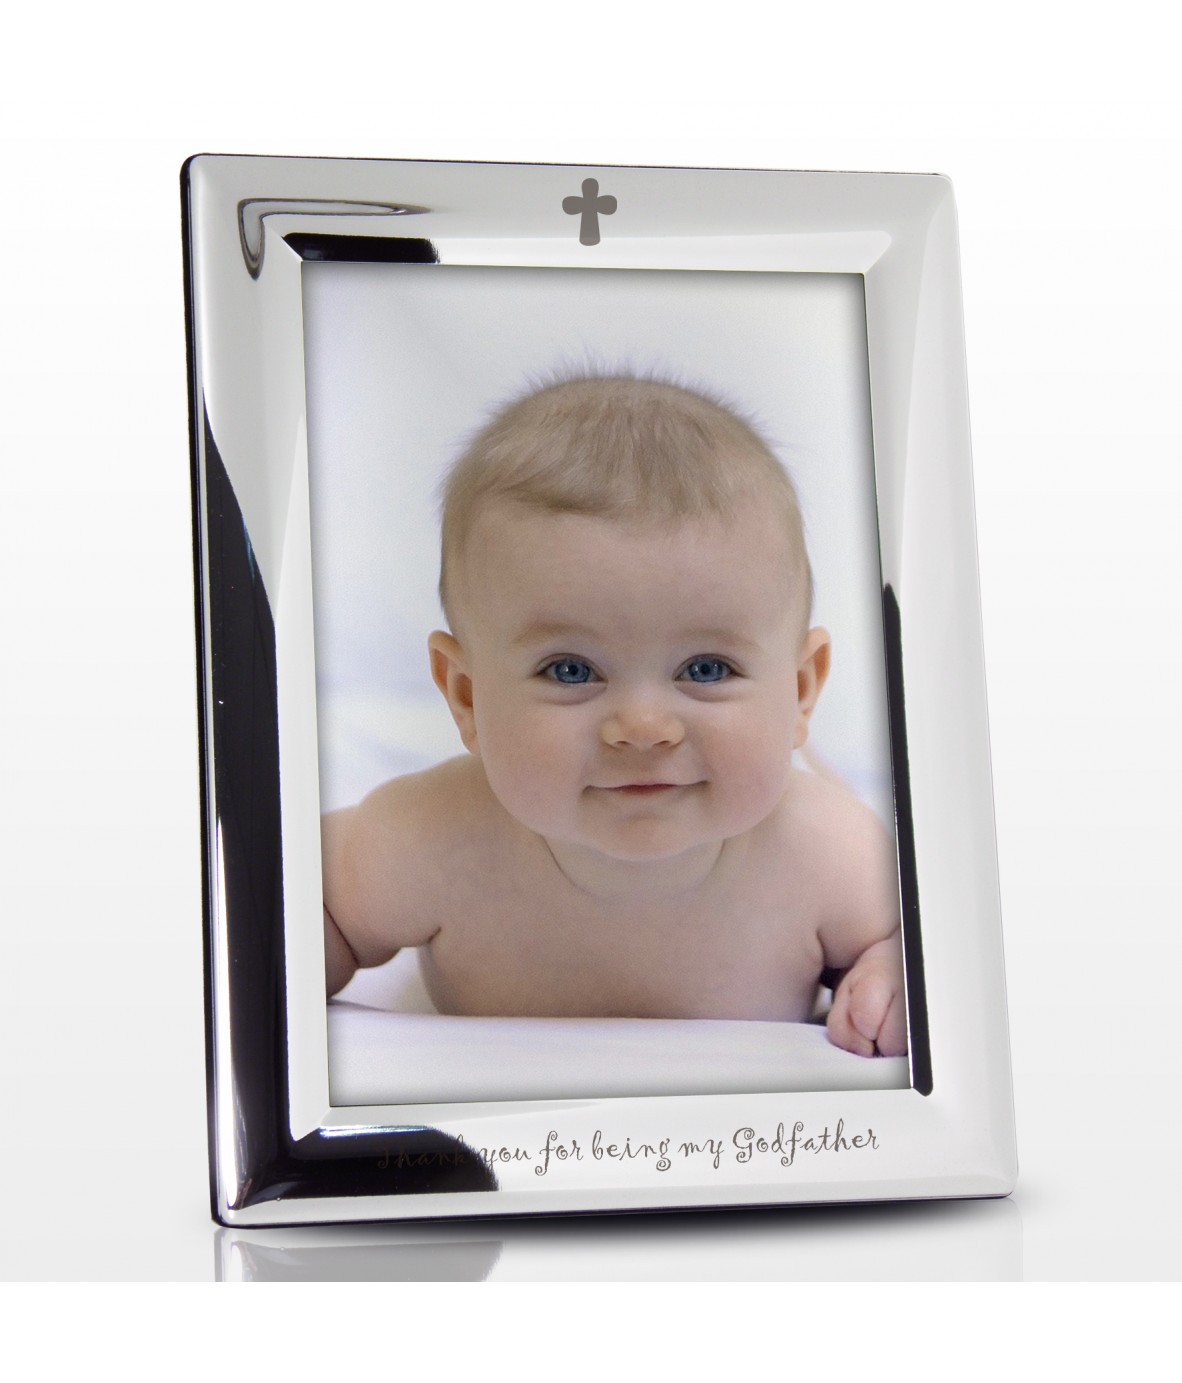 Personalised Silver Frame - Godfather - Just for Gifts